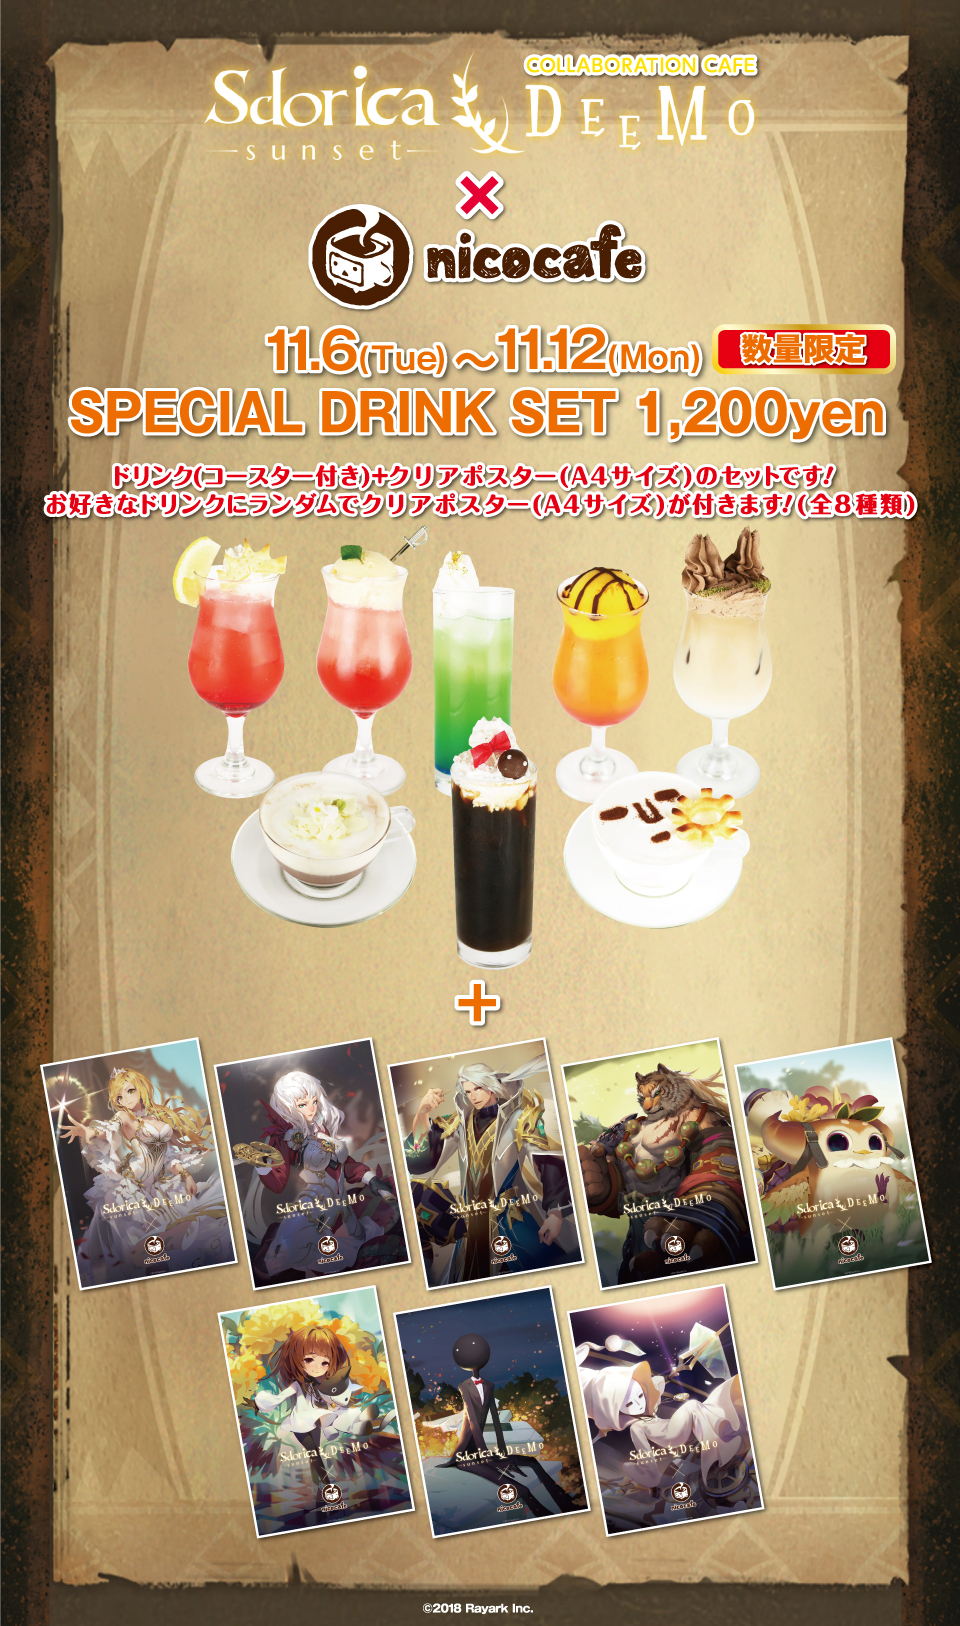 Special Drink Set: Includes Drink, Coaster (1 of 8 designs), and A4 Size Poster (1 of 8 designs).